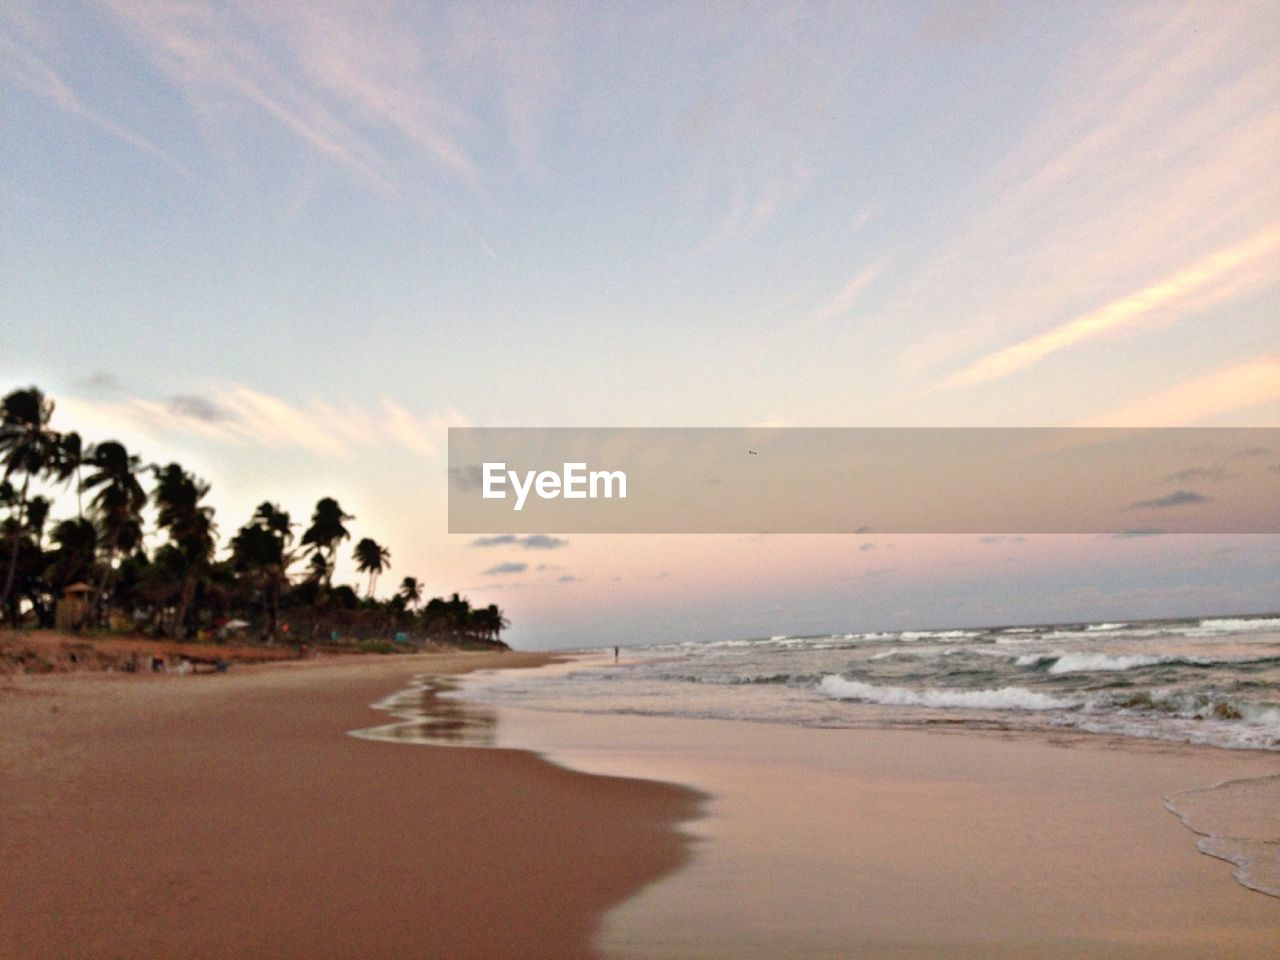 sea, beach, sunset, sky, nature, scenics, beauty in nature, sand, tranquility, tranquil scene, water, no people, outdoors, horizon over water, tree, day